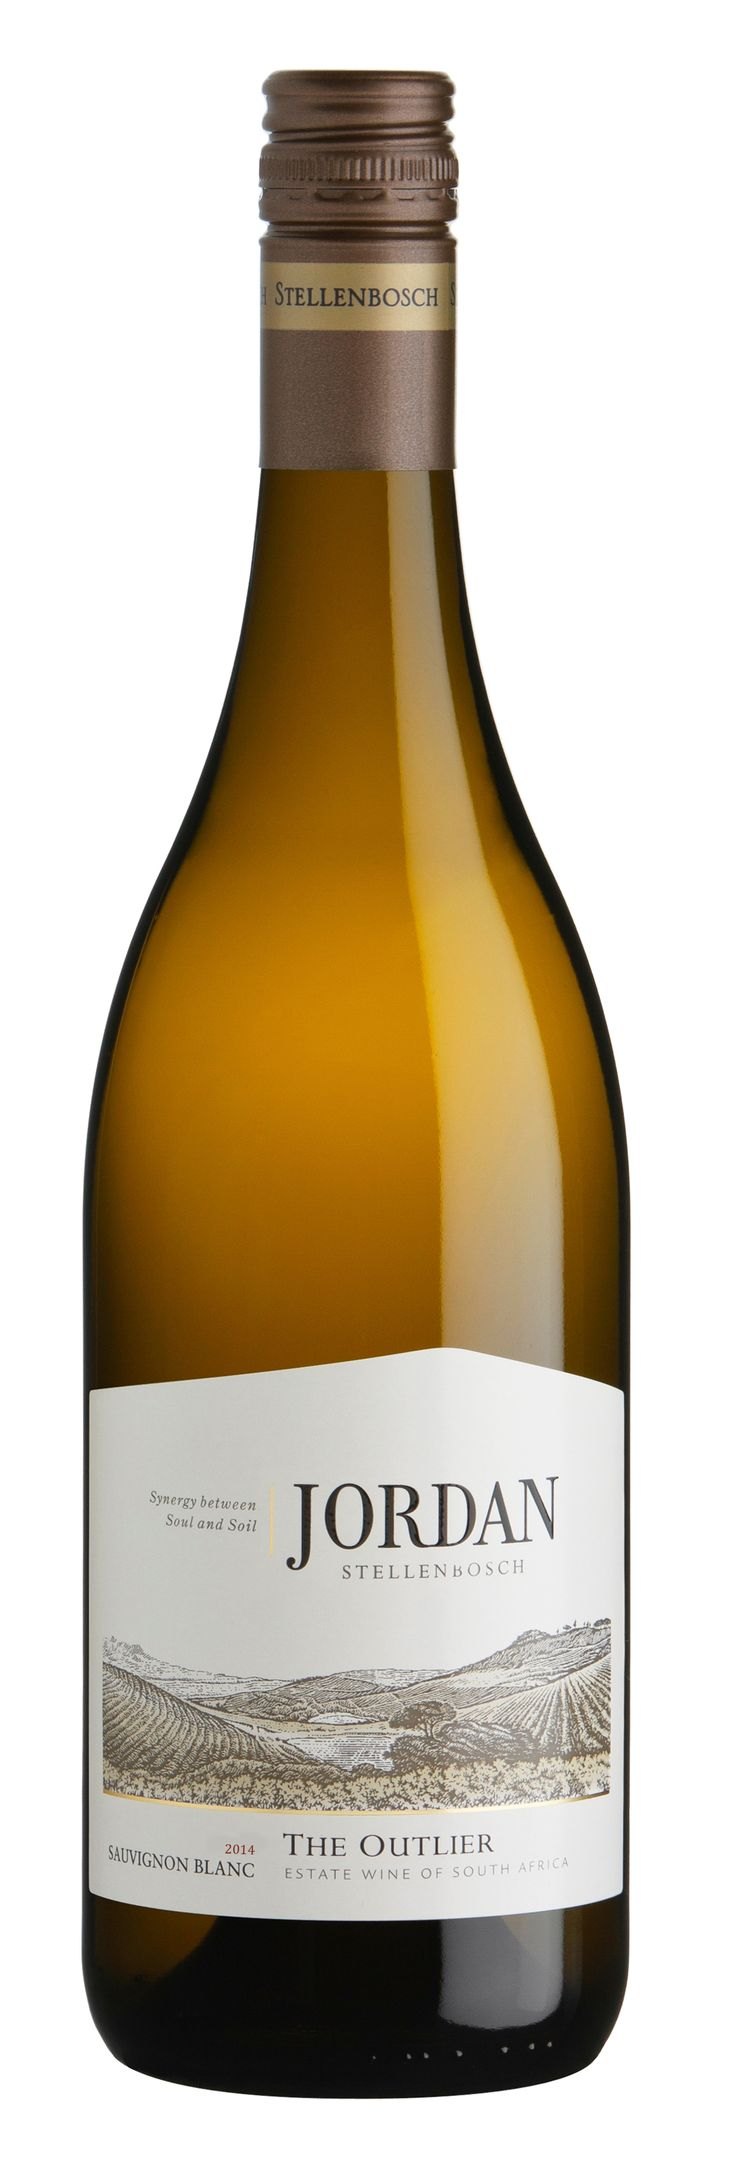 """100% Sauvignon Blanc - The Outlier. Our endeavour to produce a benchmark Sauvignon Blanc is expressed in this unique wine. Ripe fig, gooseberry and tropical fruit flavours are complemented by the gentle smoky vanilla nuances of oak – a true """"outlier""""."""